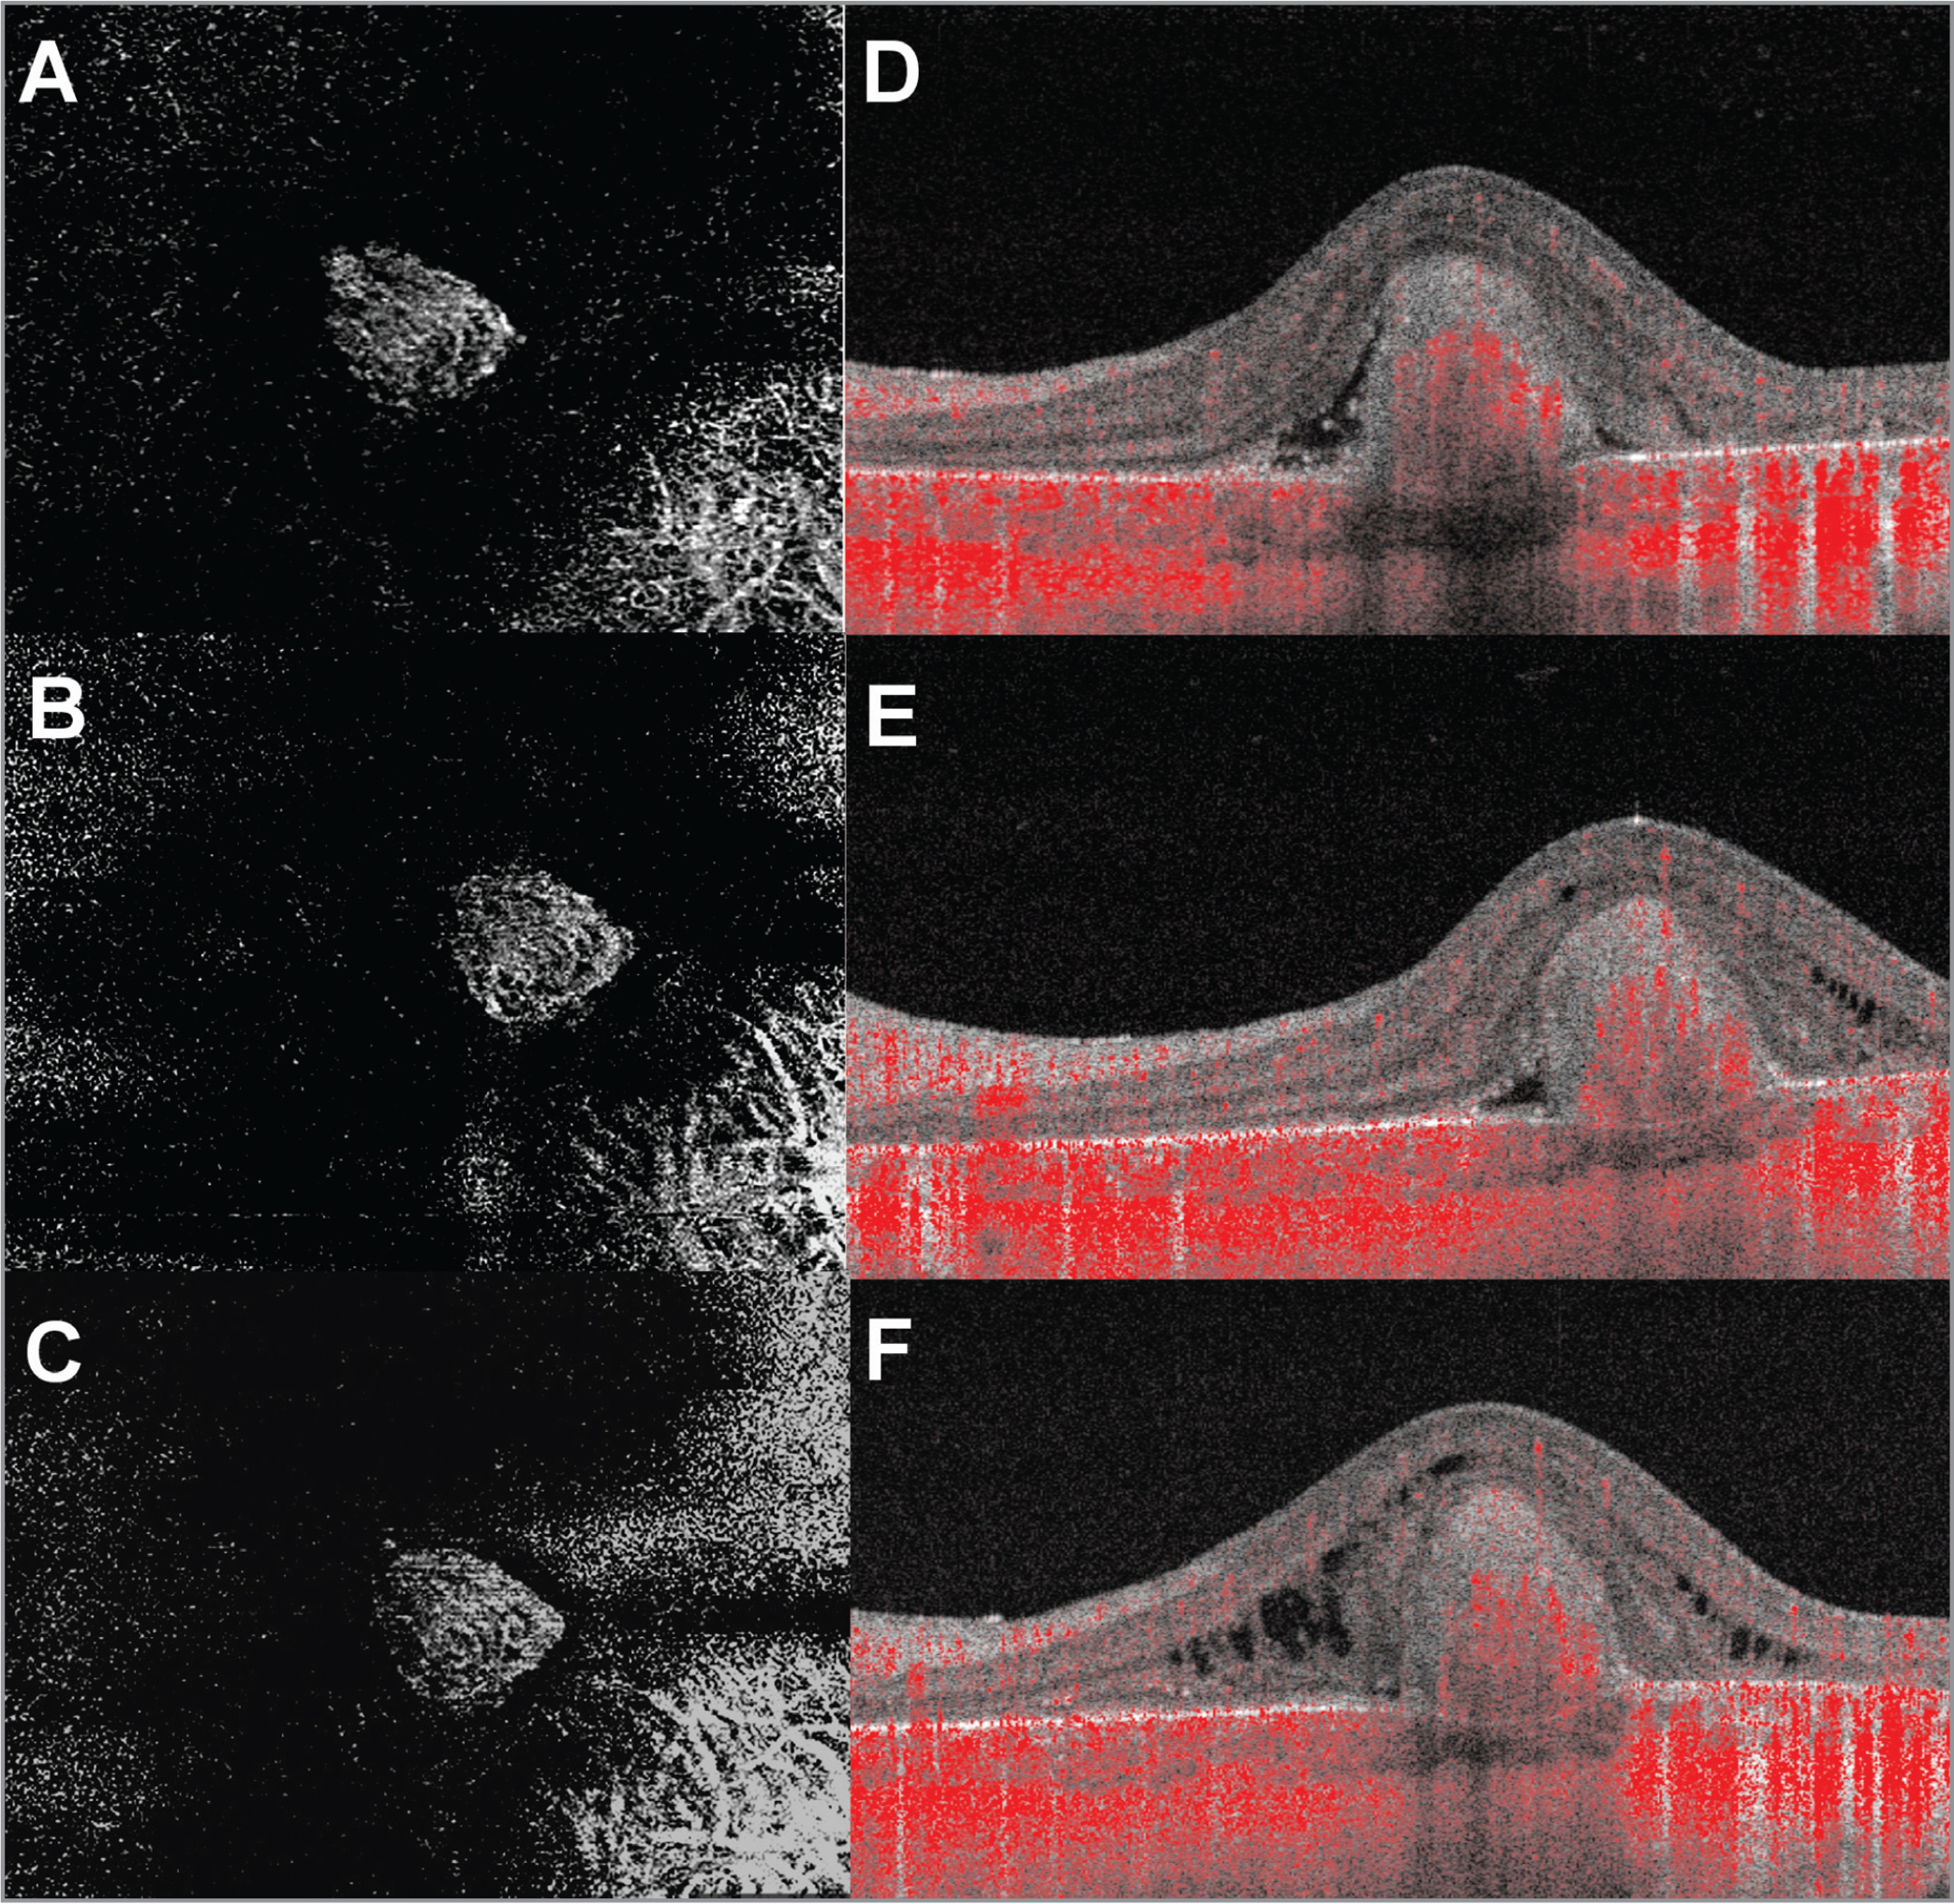 Swept-source optical coherence tomography angiography of choroidal neovascular membrane in choroideremia. Compared to baseline en face imaging (A), the size of the neovascular lesion did not change significantly at 1-month post-injection (B) or at last follow-up (C). There appears to be pruning of small vessels compared to baseline 1-month post-injection (B), with regrowth after a 3-month injection holiday (C). Doppler flow through the lesion persists with treatment (D–F). Subretinal and intraretinal fluid is decreased at 1-month post-injection (E) but reaccumulates with prolonged 3-month injection holiday (F).